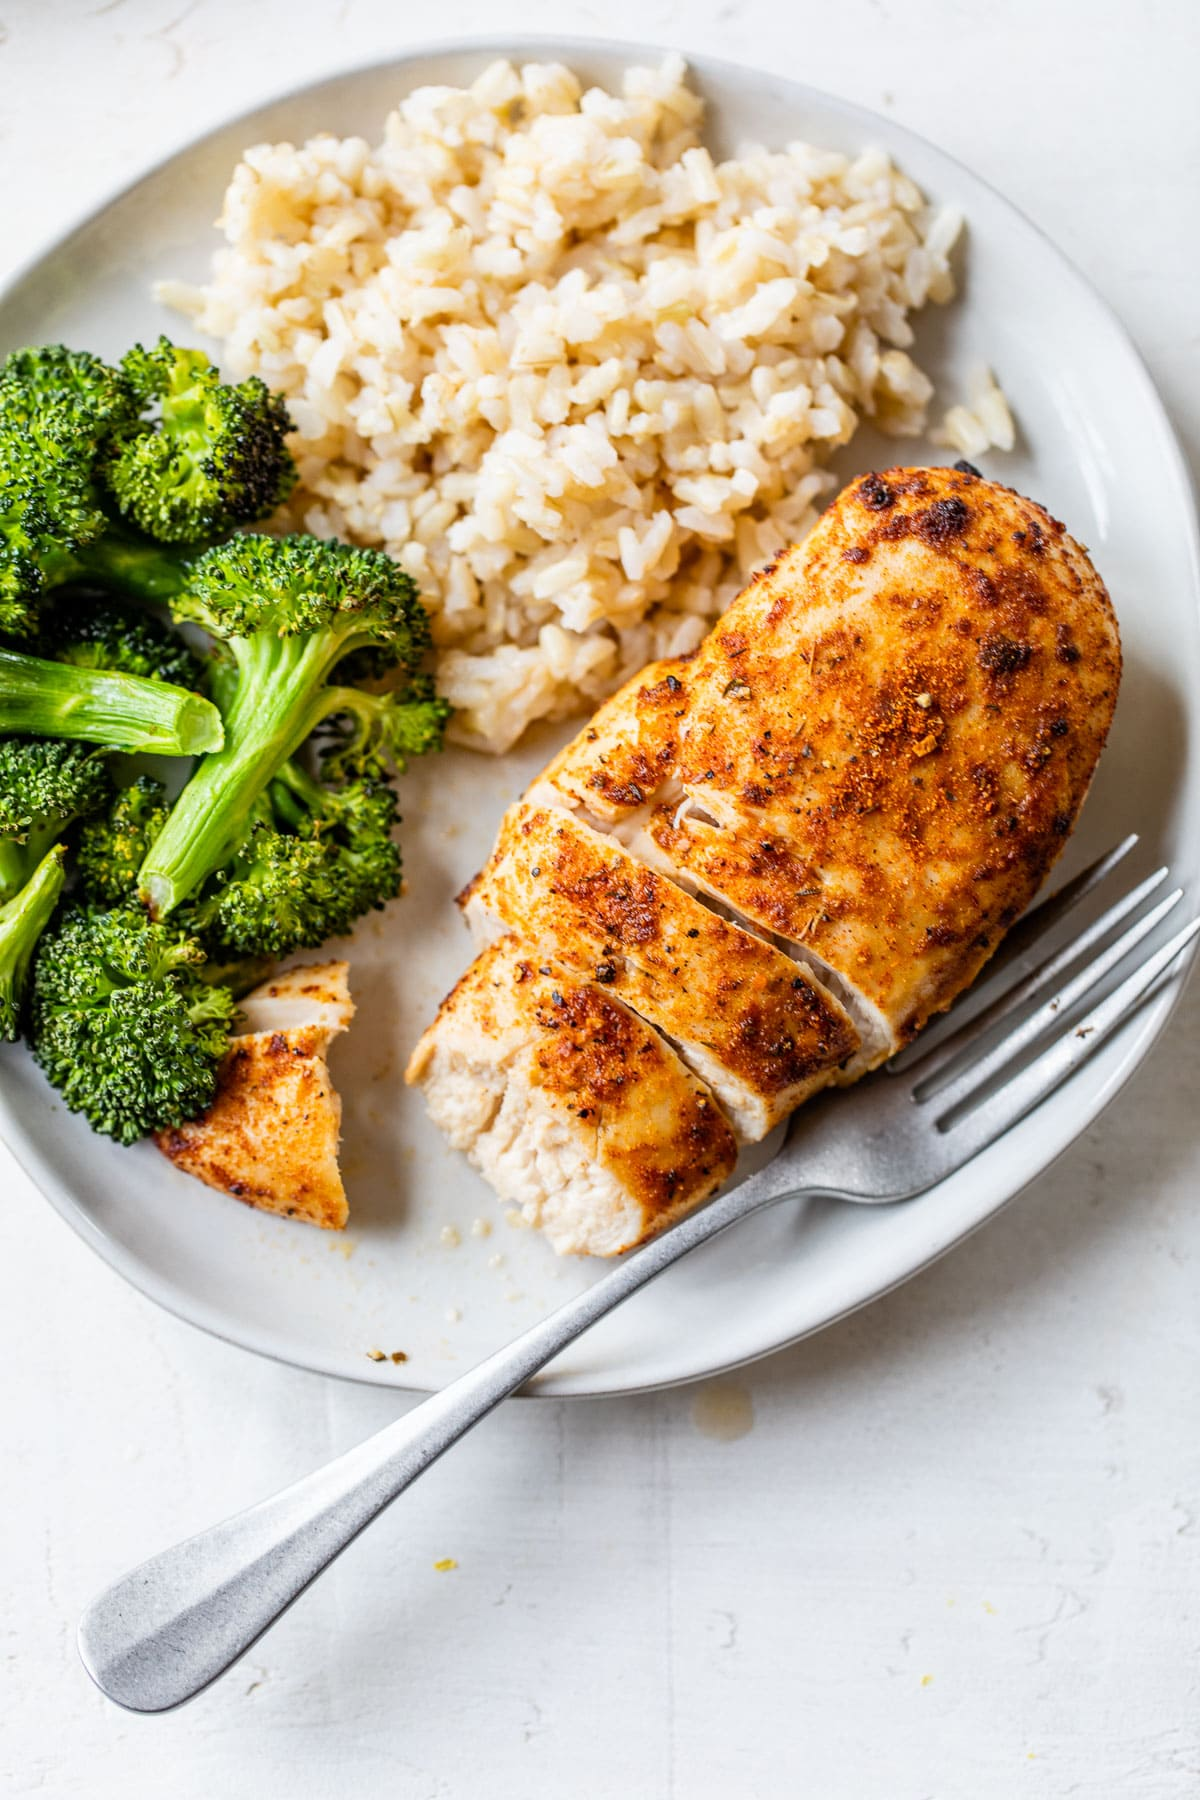 Air fryer chicken breast on a plate with broccoli and rice